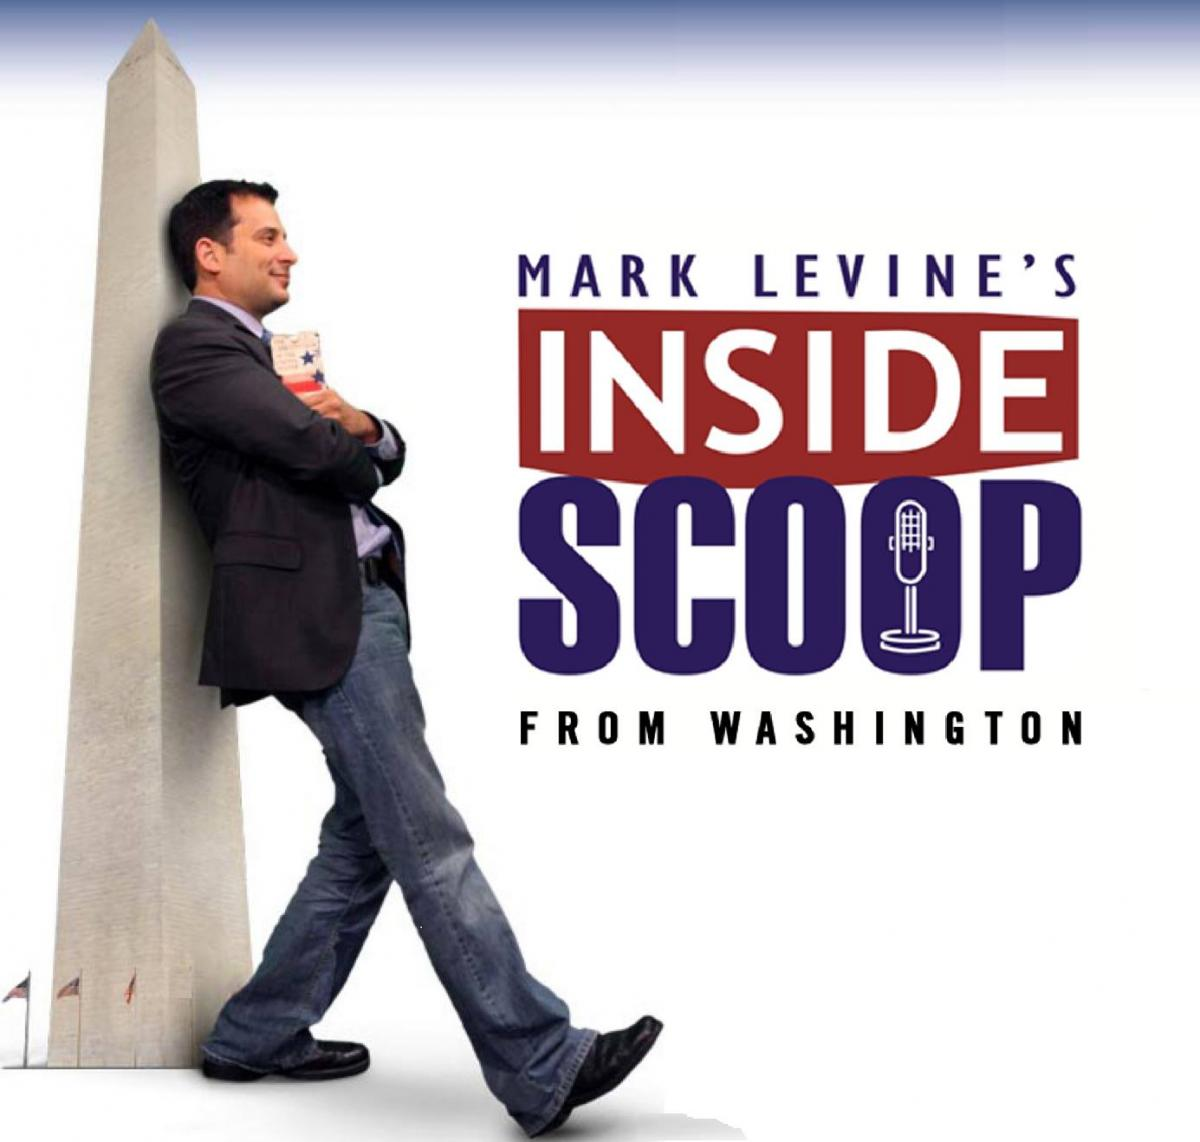 Mark Levine's Inside Scoop from Washington